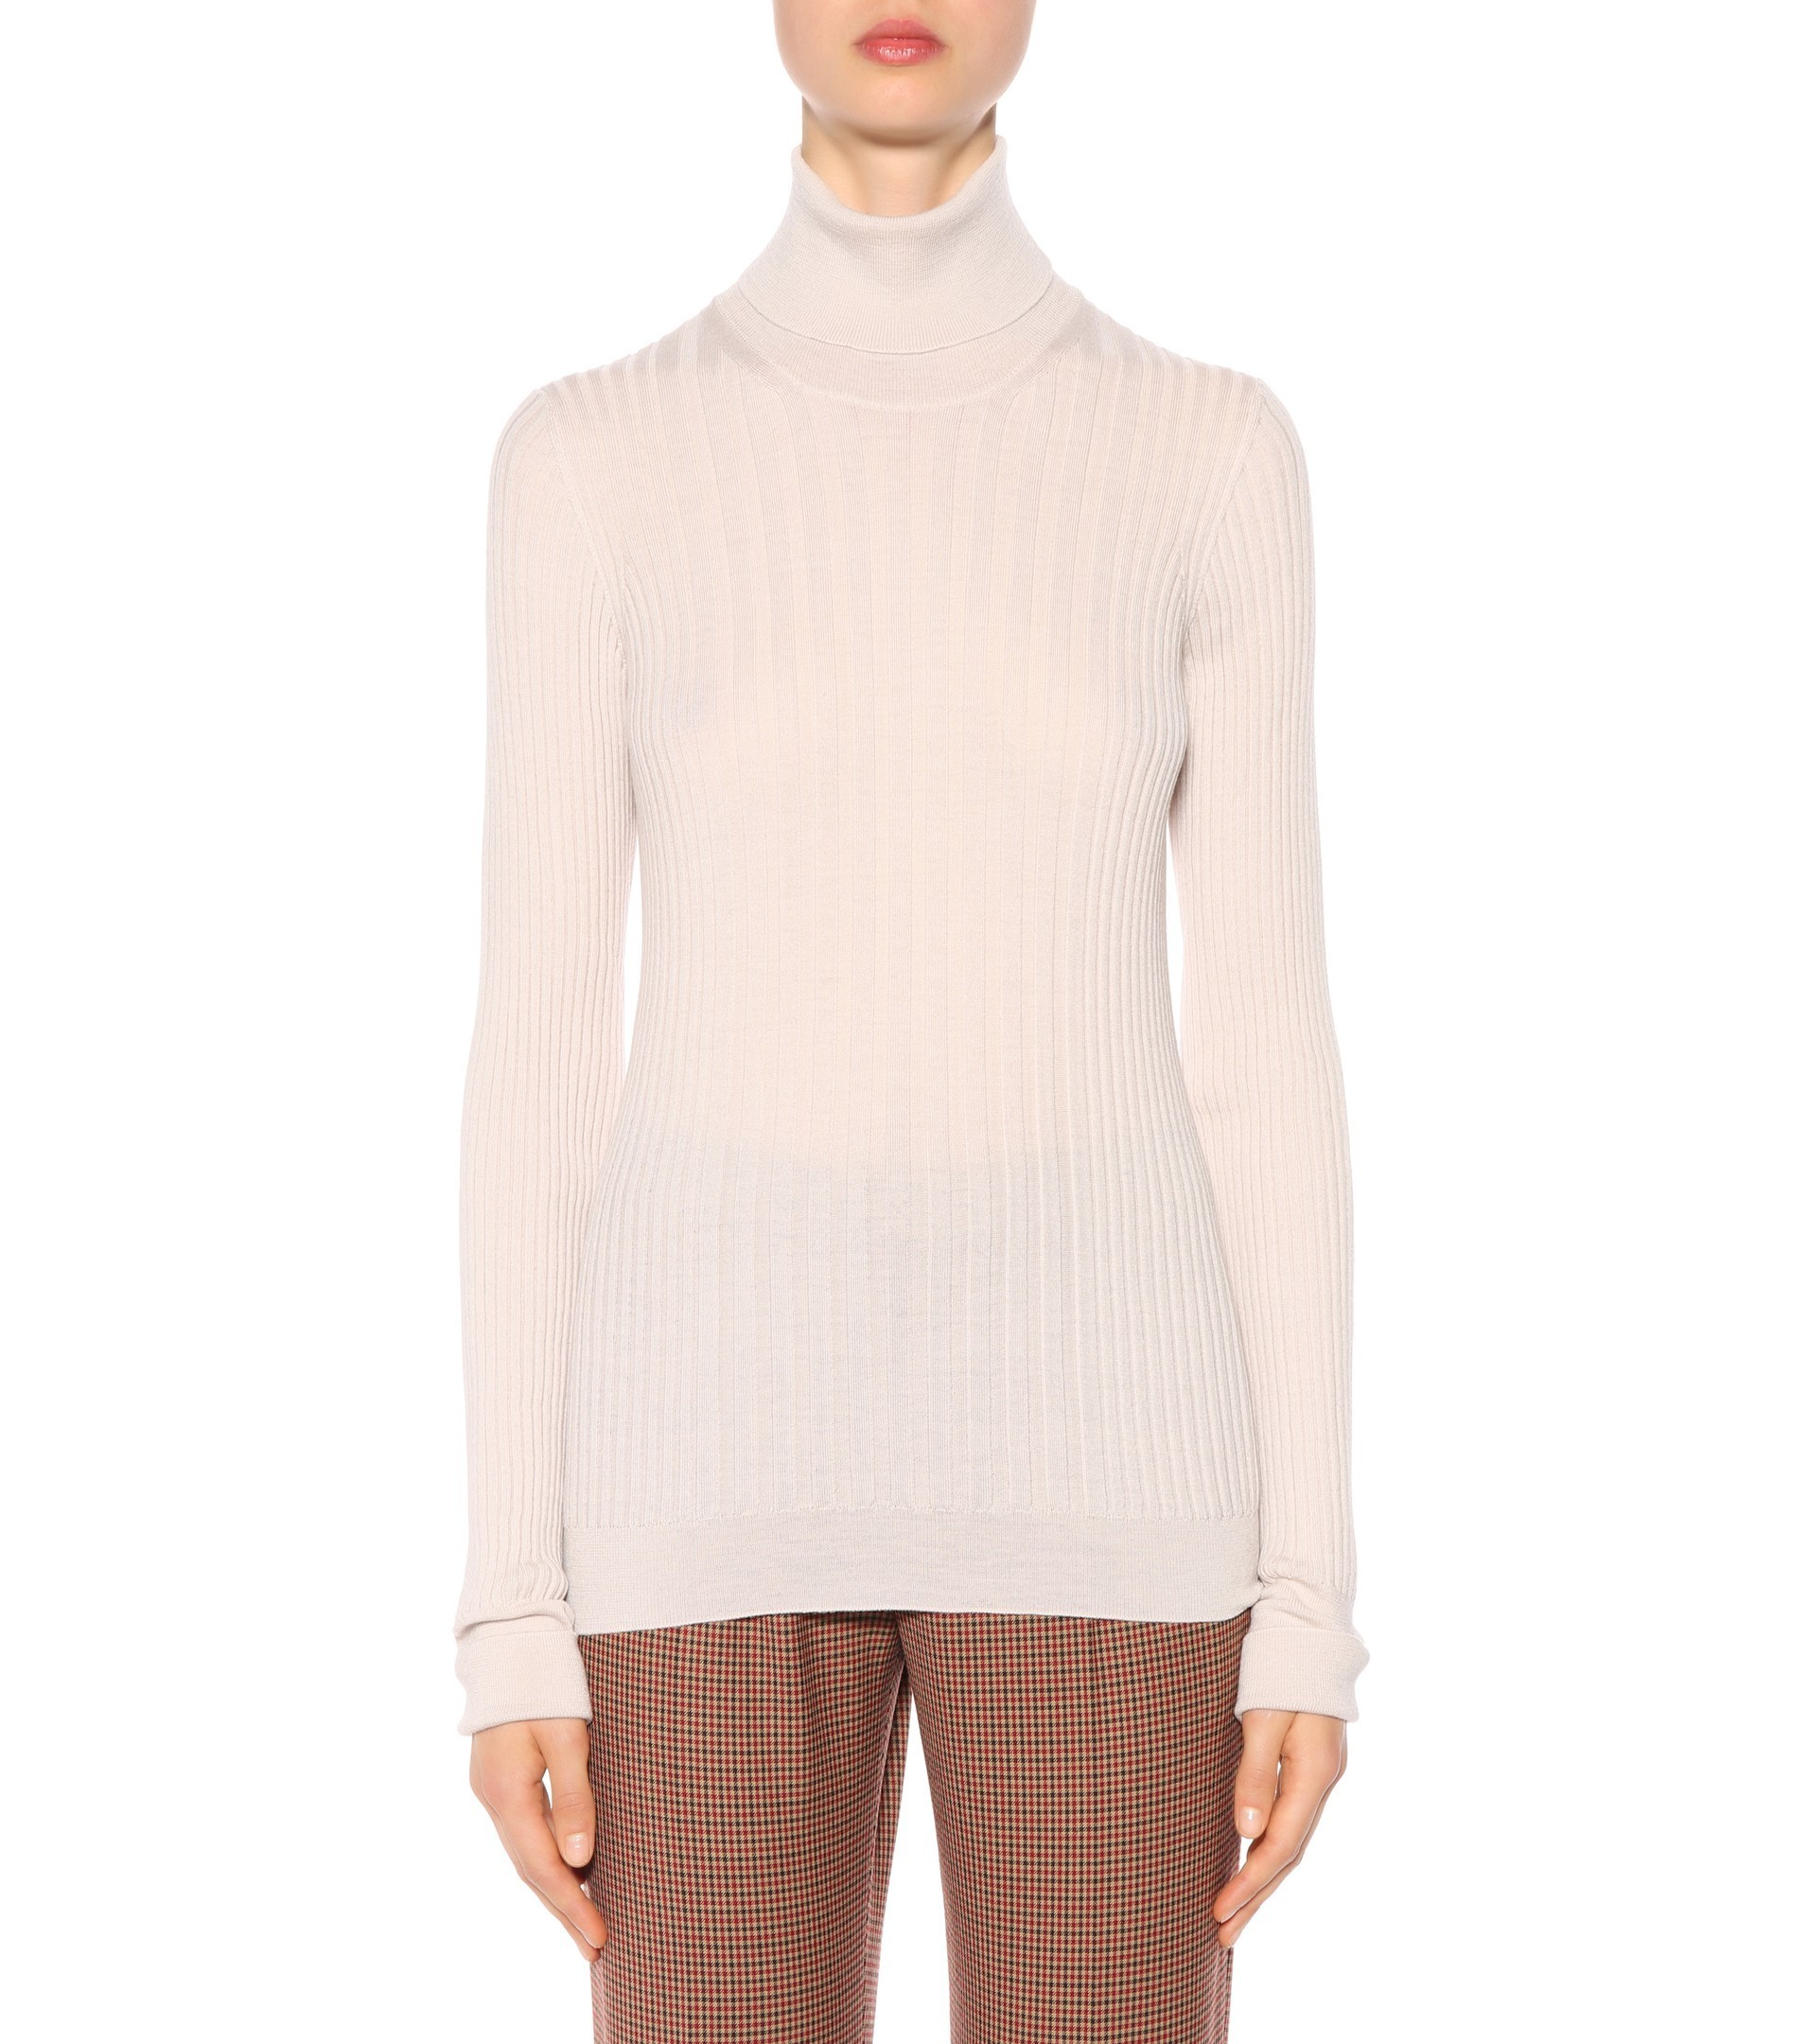 17-18AW MMF100 RIBBED WOOL TURTLENECK SWEATER